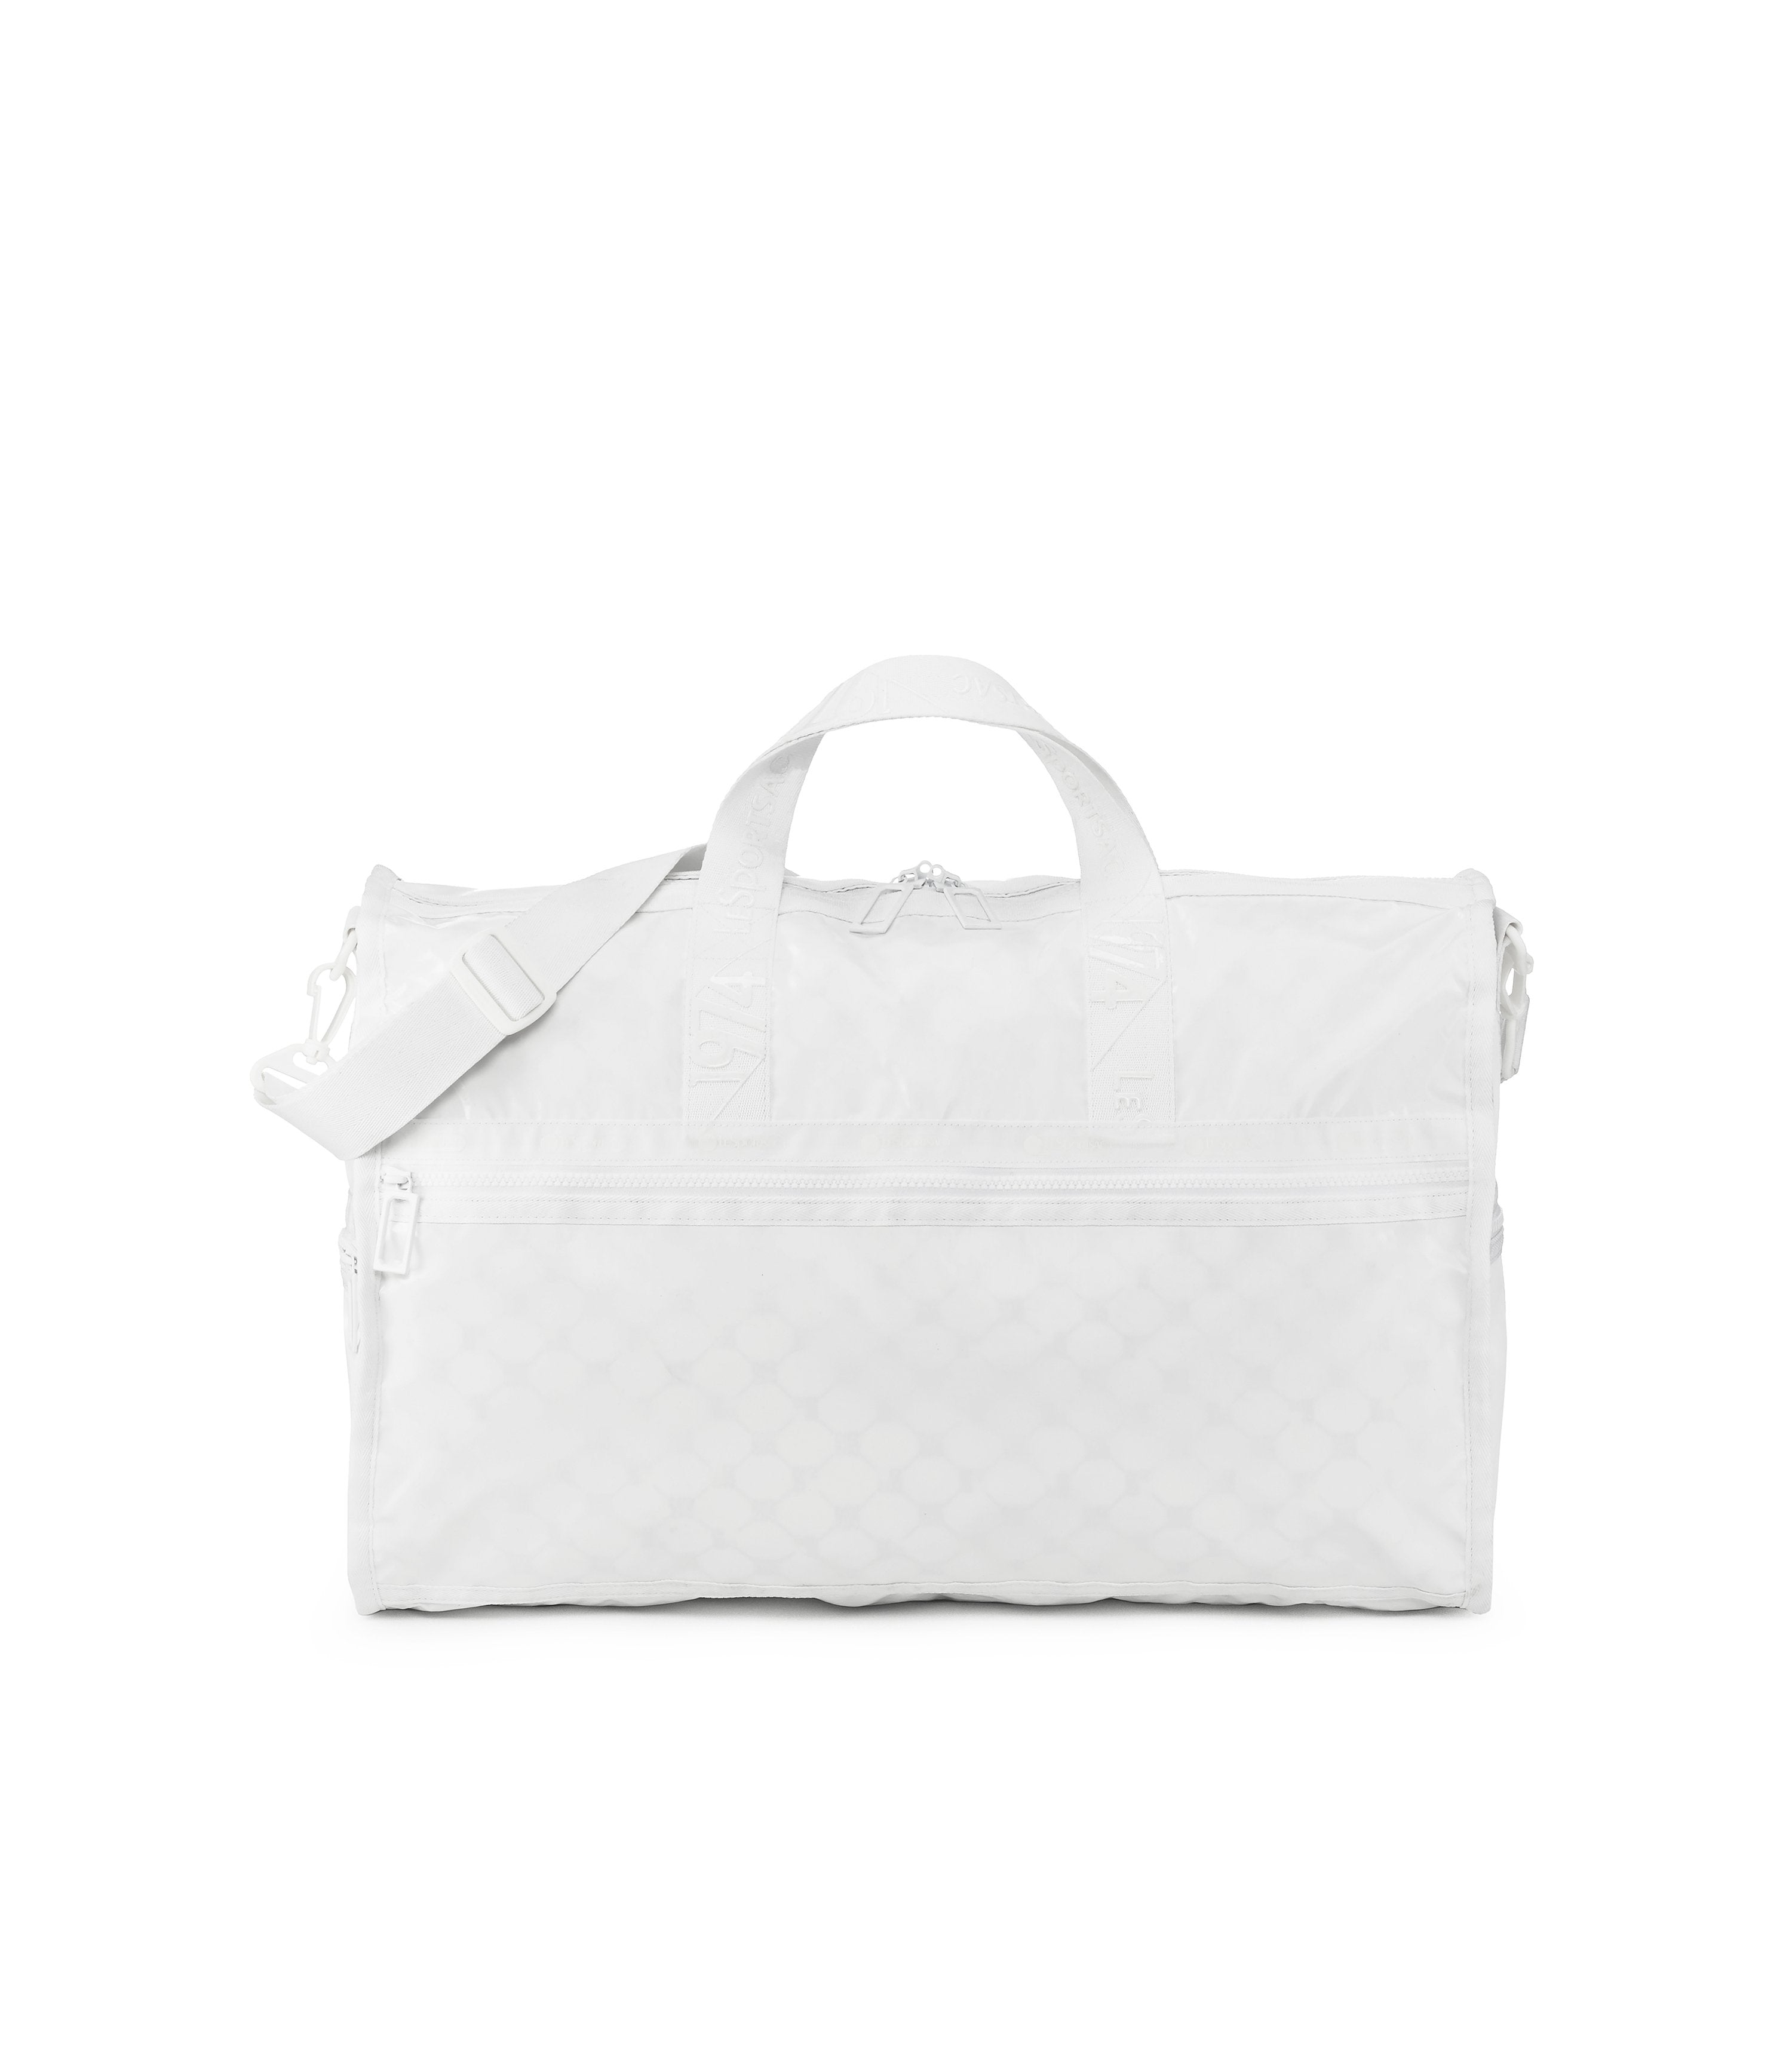 Large Weekender Bags, Duffle Bags, Carry-on, LeSportsac, Heritage, White Patent